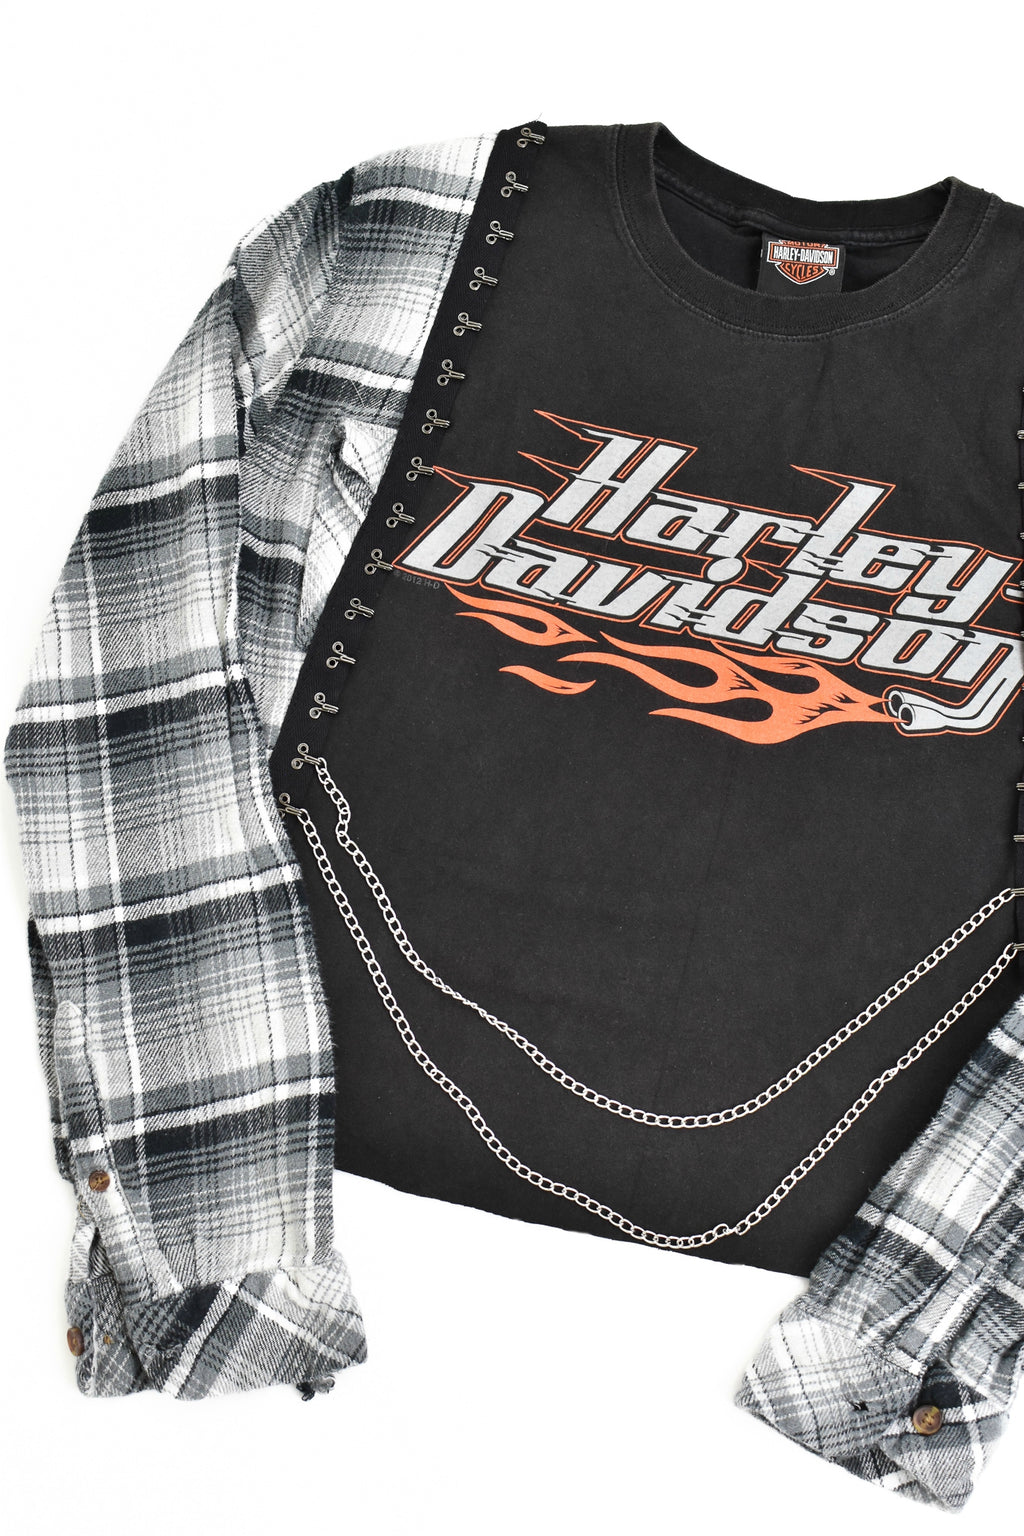 Upcycled Harley Davidson Chain Rock Top